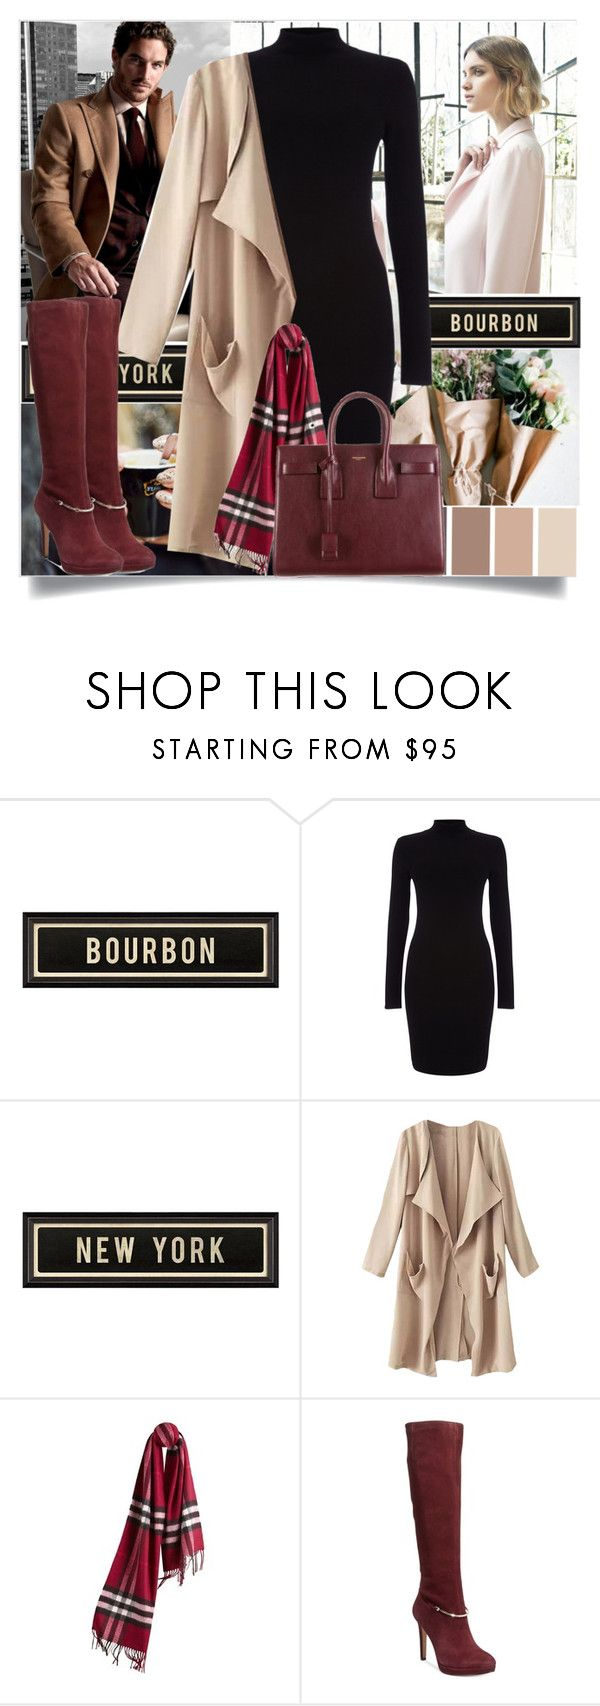 """""""Old Ways"""" by sharoosanguinetti ❤ liked on Polyvore featuring Nuevo, Hickey Freeman, Spicher and Company, Phase Eight, Burberry, Nine West and Yves Saint Laurent"""